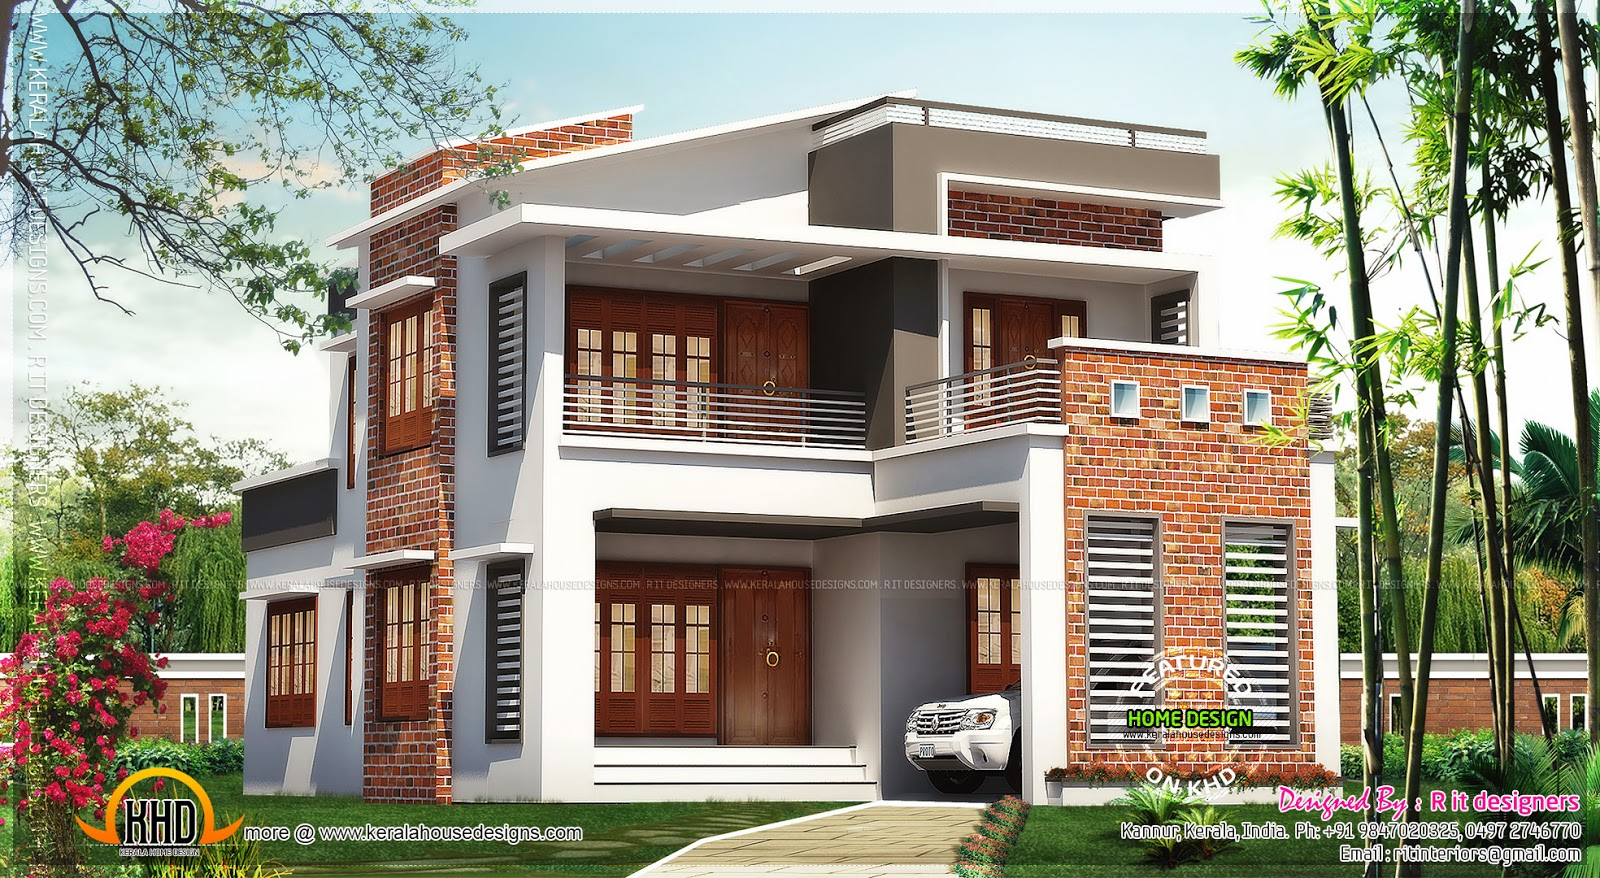 Brick mix house exterior design kerala home design and for Home design outside wall